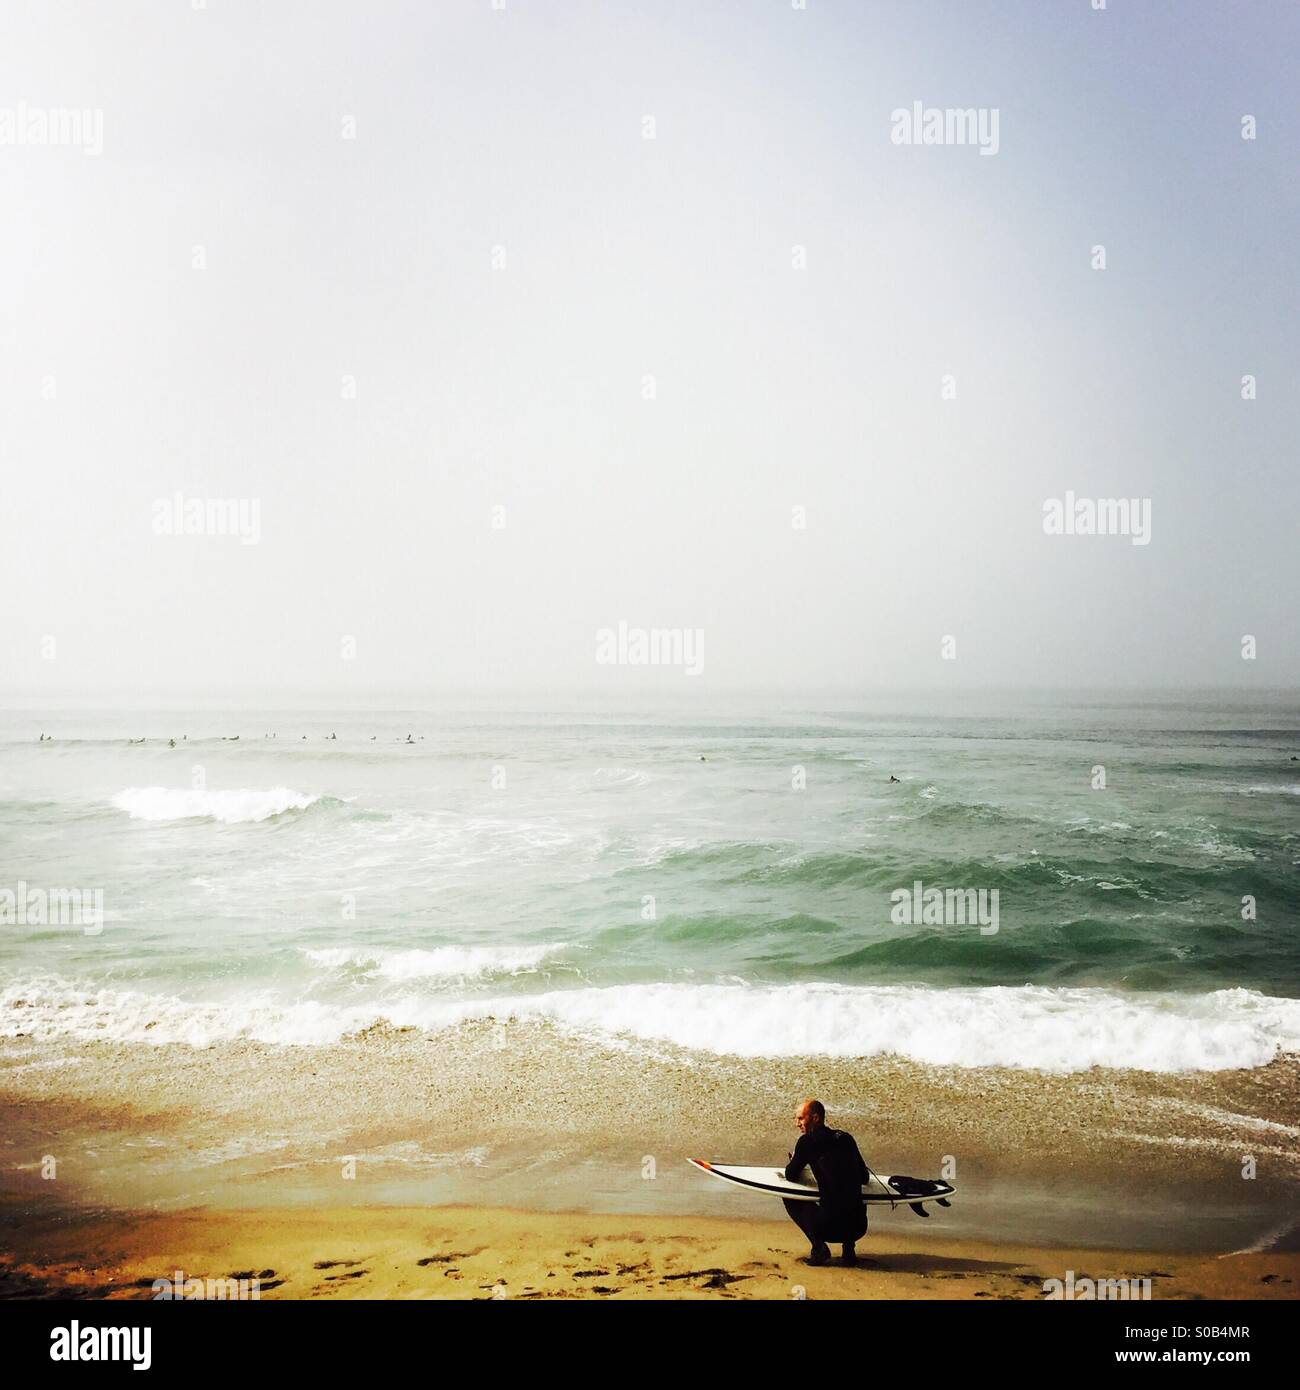 Un internaute attend sur la plage. Manhattan Beach, Californie, États-Unis. Banque D'Images